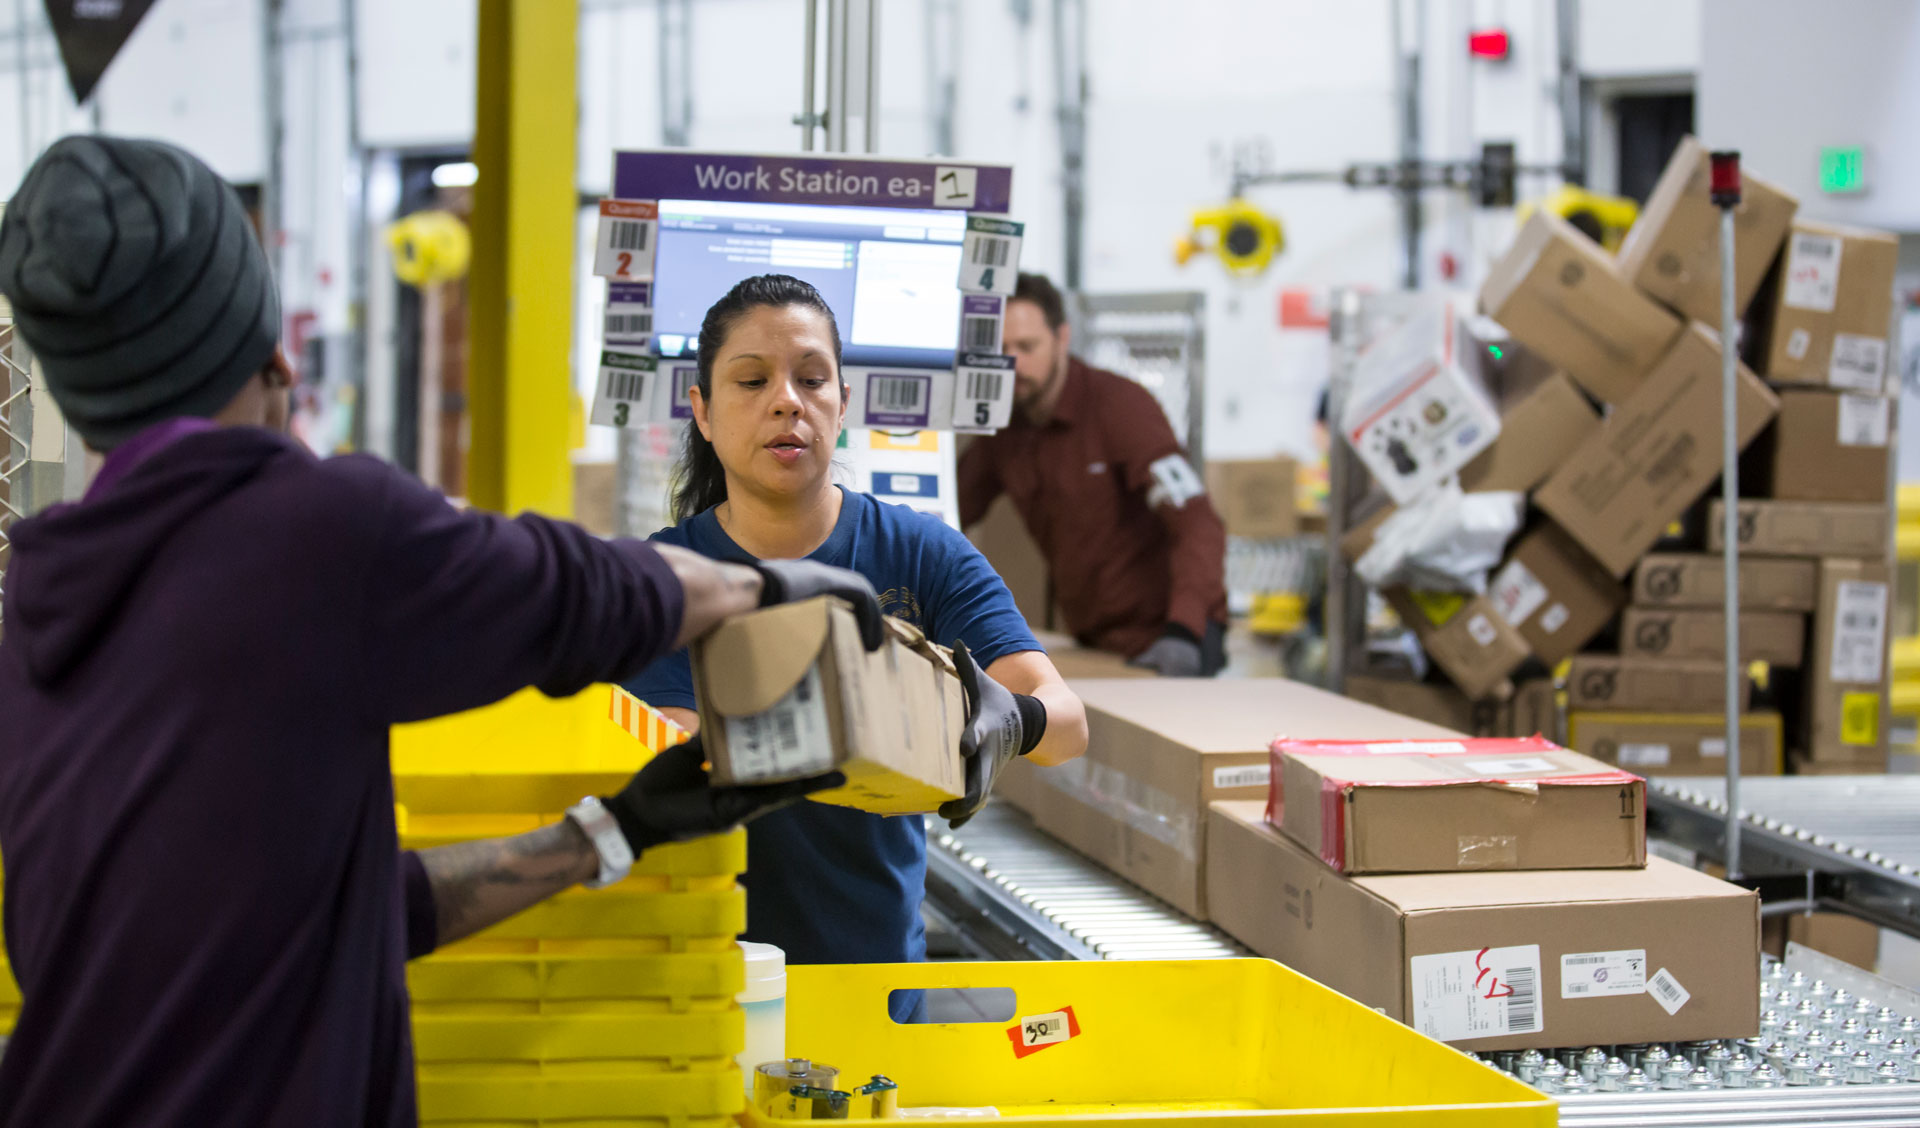 One worker hands a box to another worker as they stand in front of a conveyor belt filled with cardboard boxes.